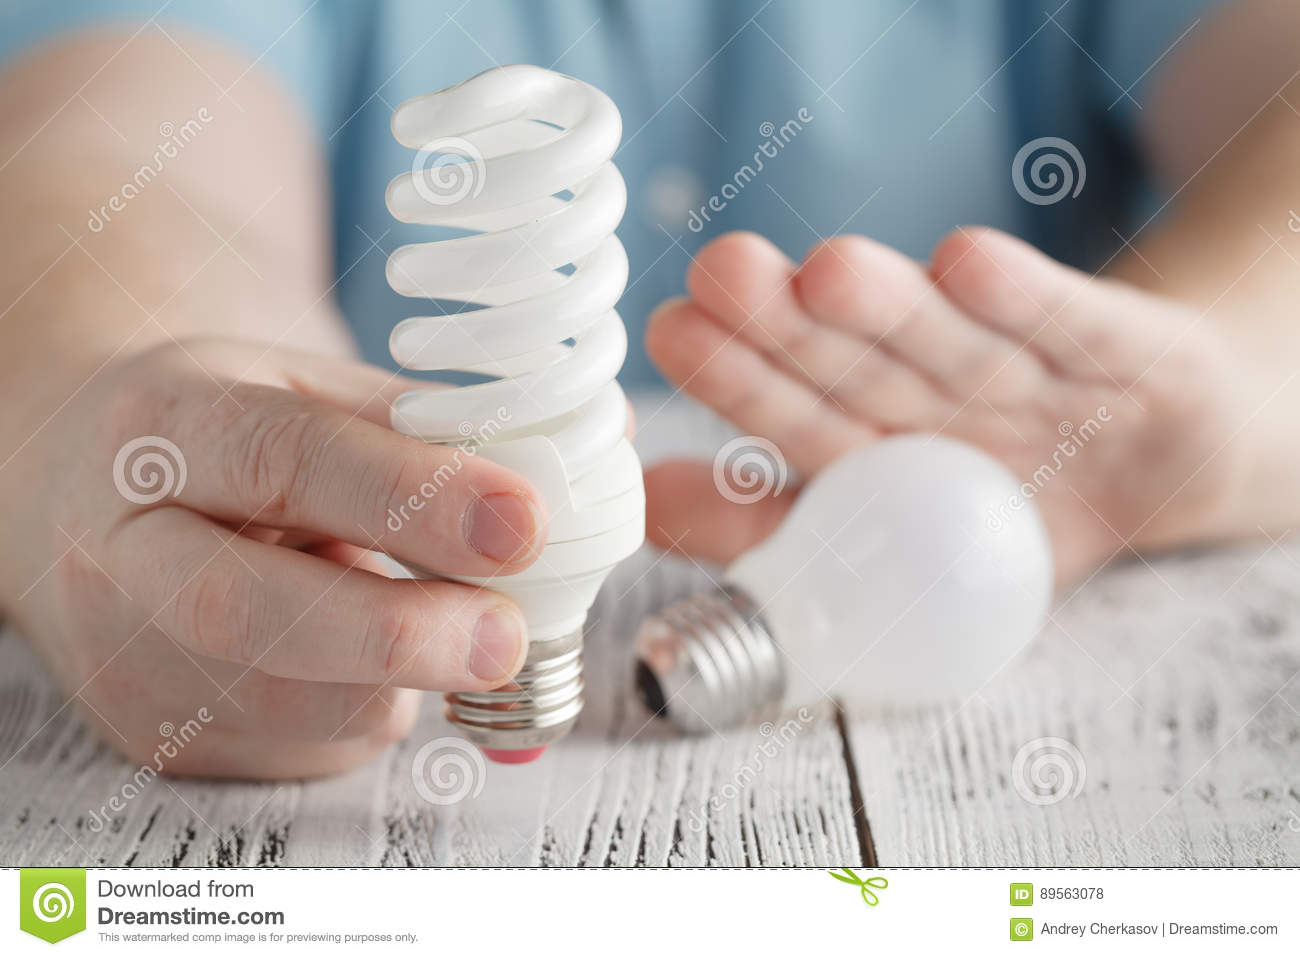 Man Holding An Energy Saving Lamp And Refuse Normal Light Bulb Royalty Free Stock Image